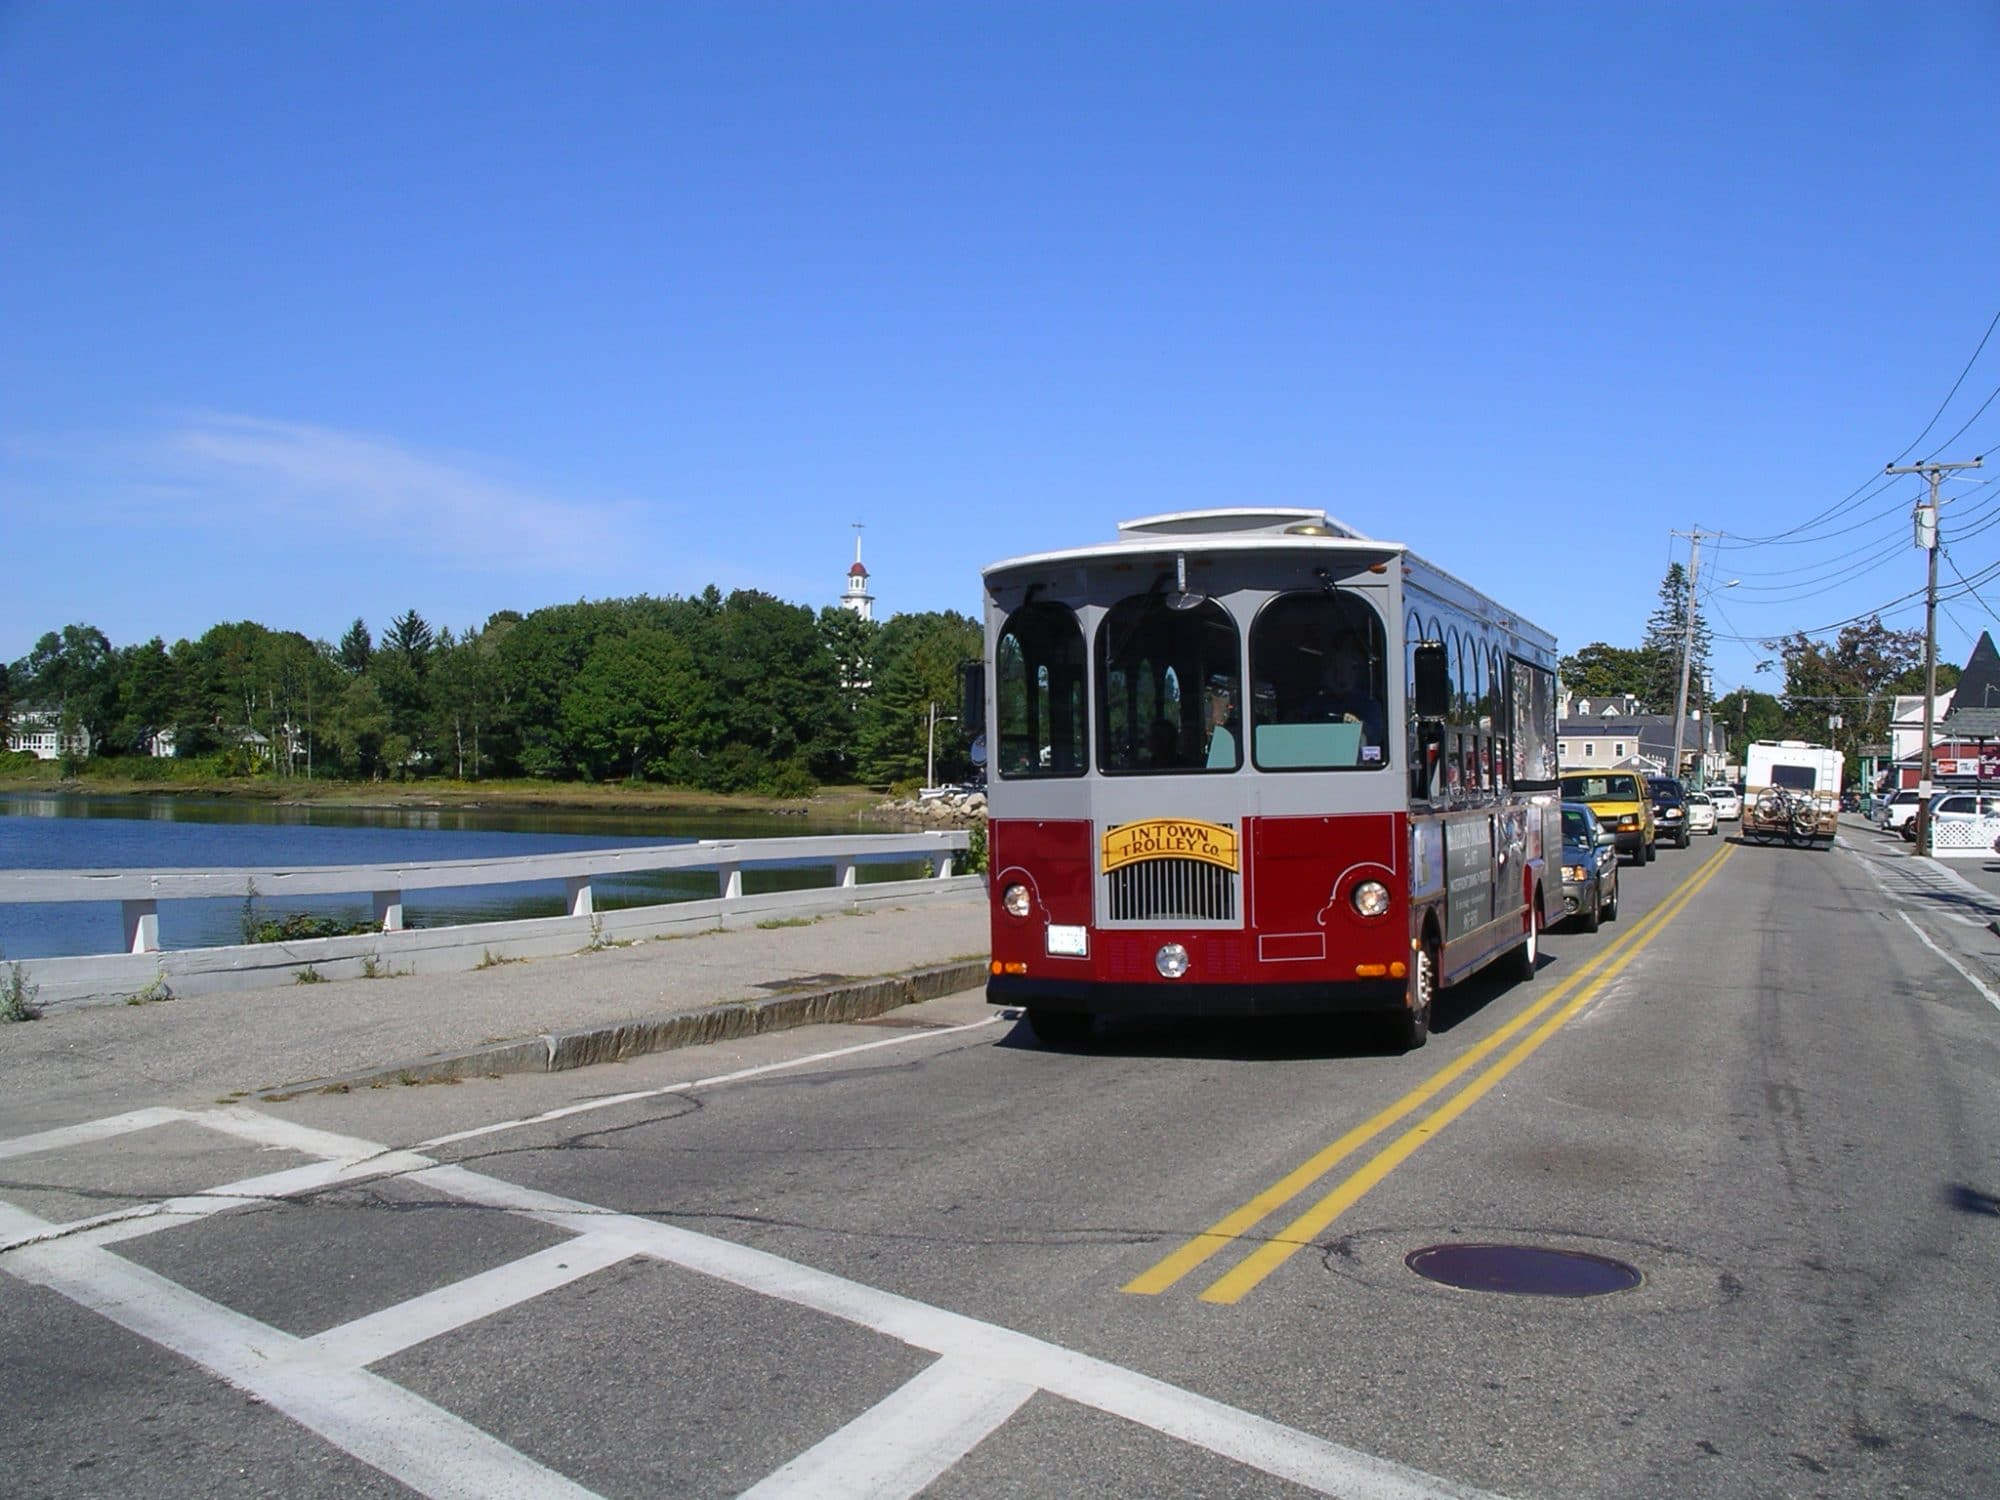 intowntrolley-2